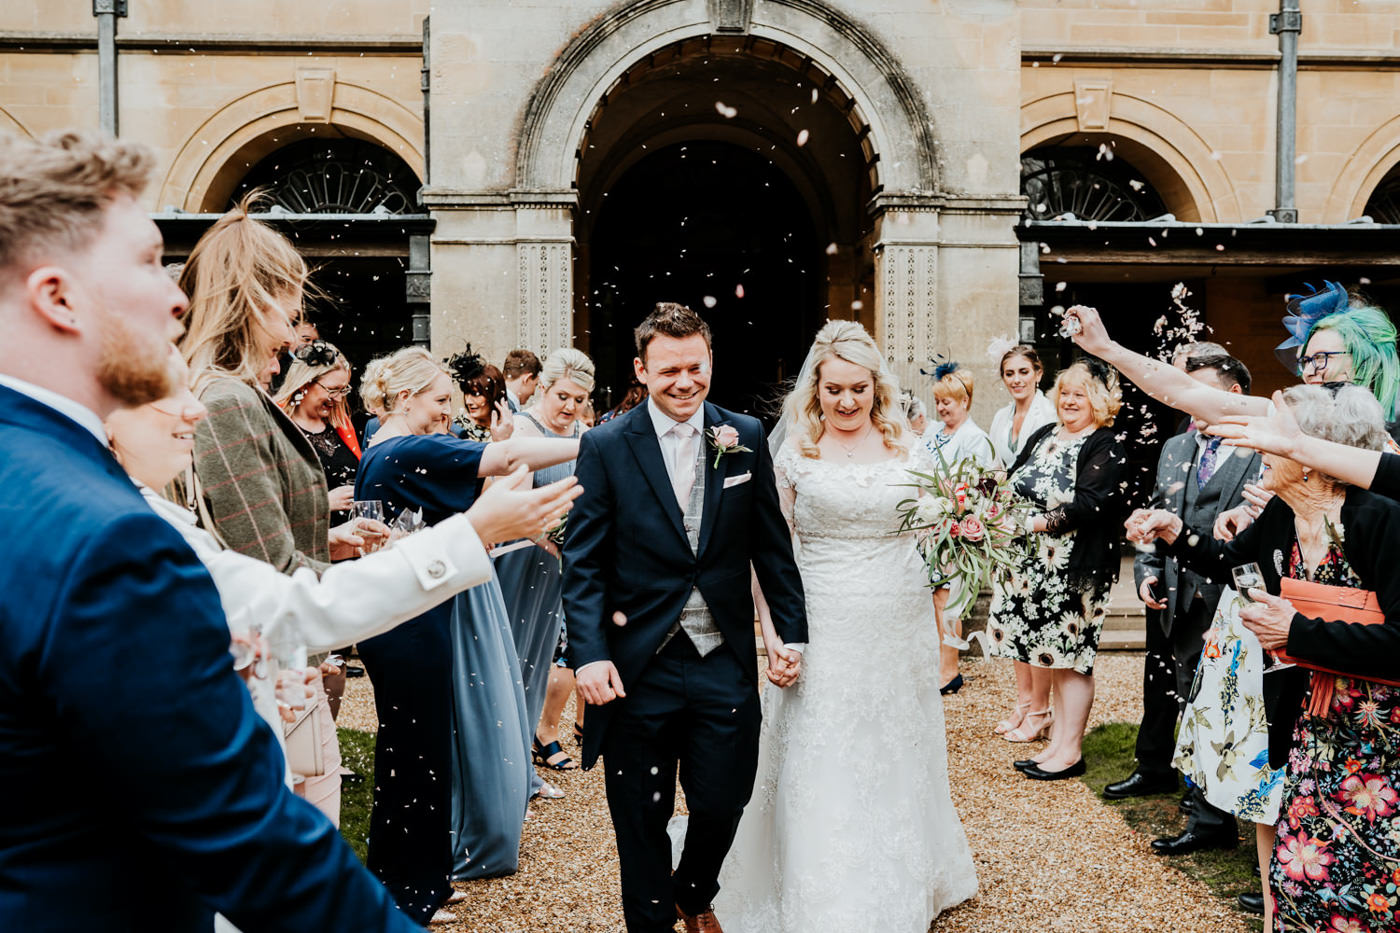 Amy and Rich, Coombe Lodge, Bristol 2